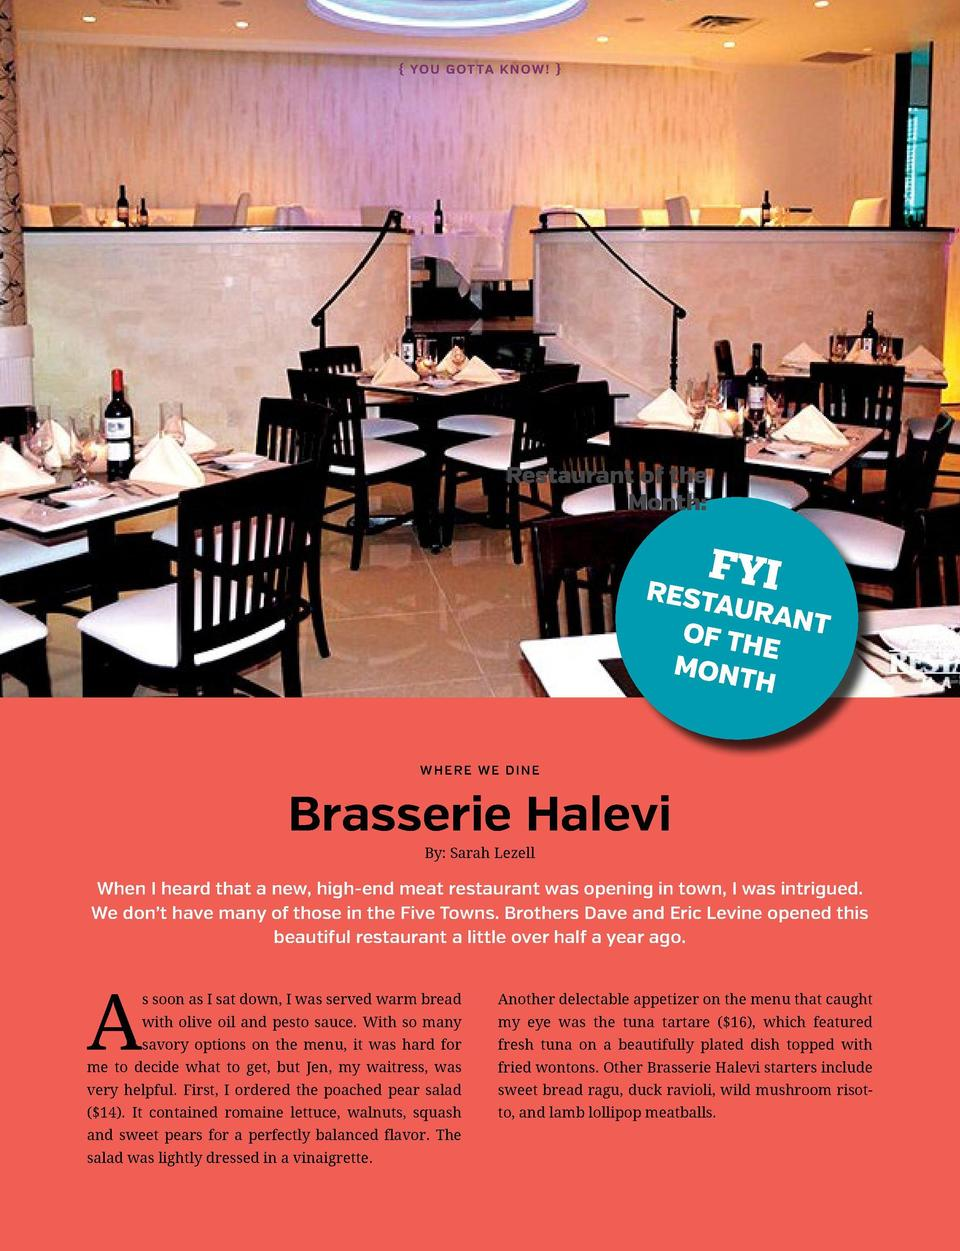 You G ot ta Kn ow     Restaurant of the Month   FY  Resta I uran t of th e Mont h W H ERE WE DINE  Brasserie Halevi By  ...